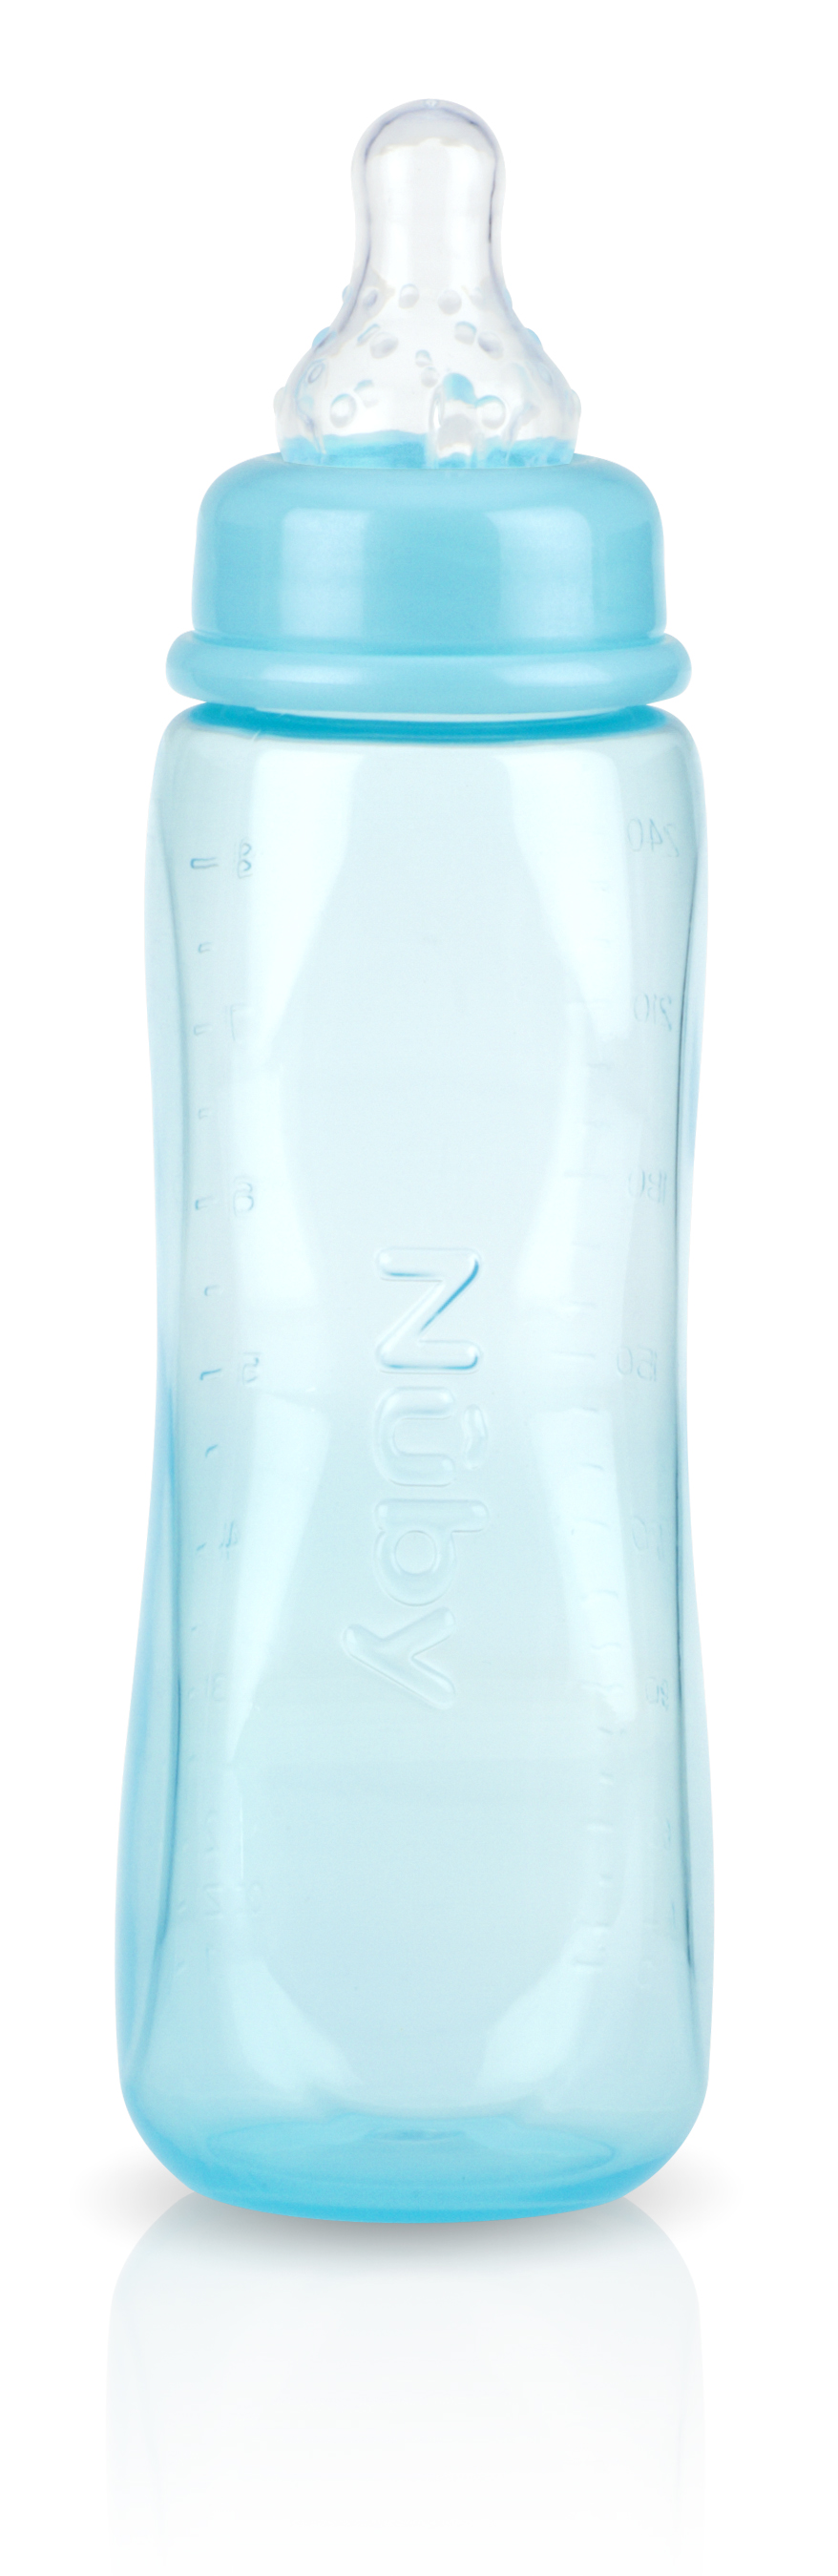 240ml Conventional Bottle